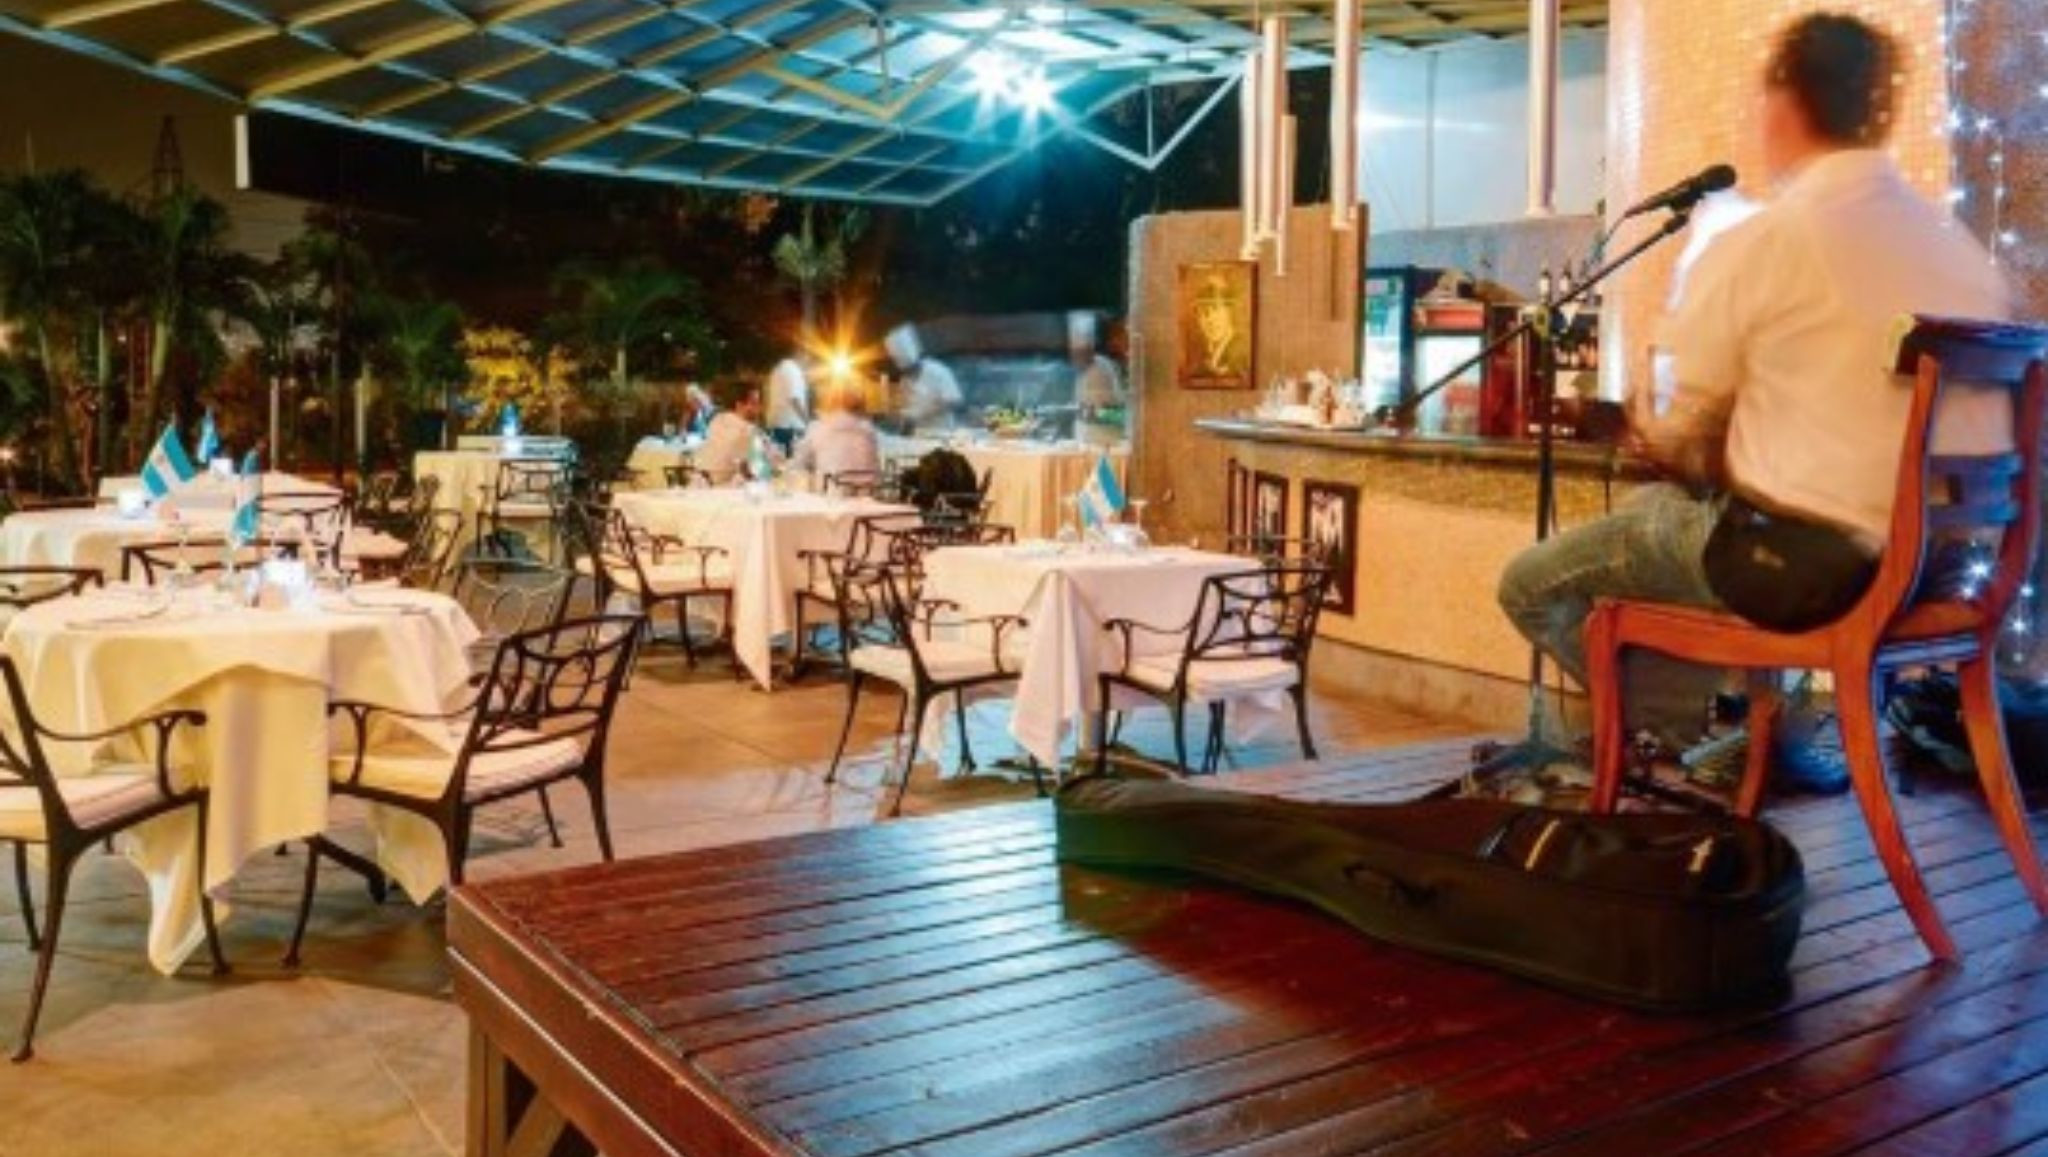 43 Street Hotel Dann Carlton In Medellín Restaurant Reviews Menu And Prices Thefork